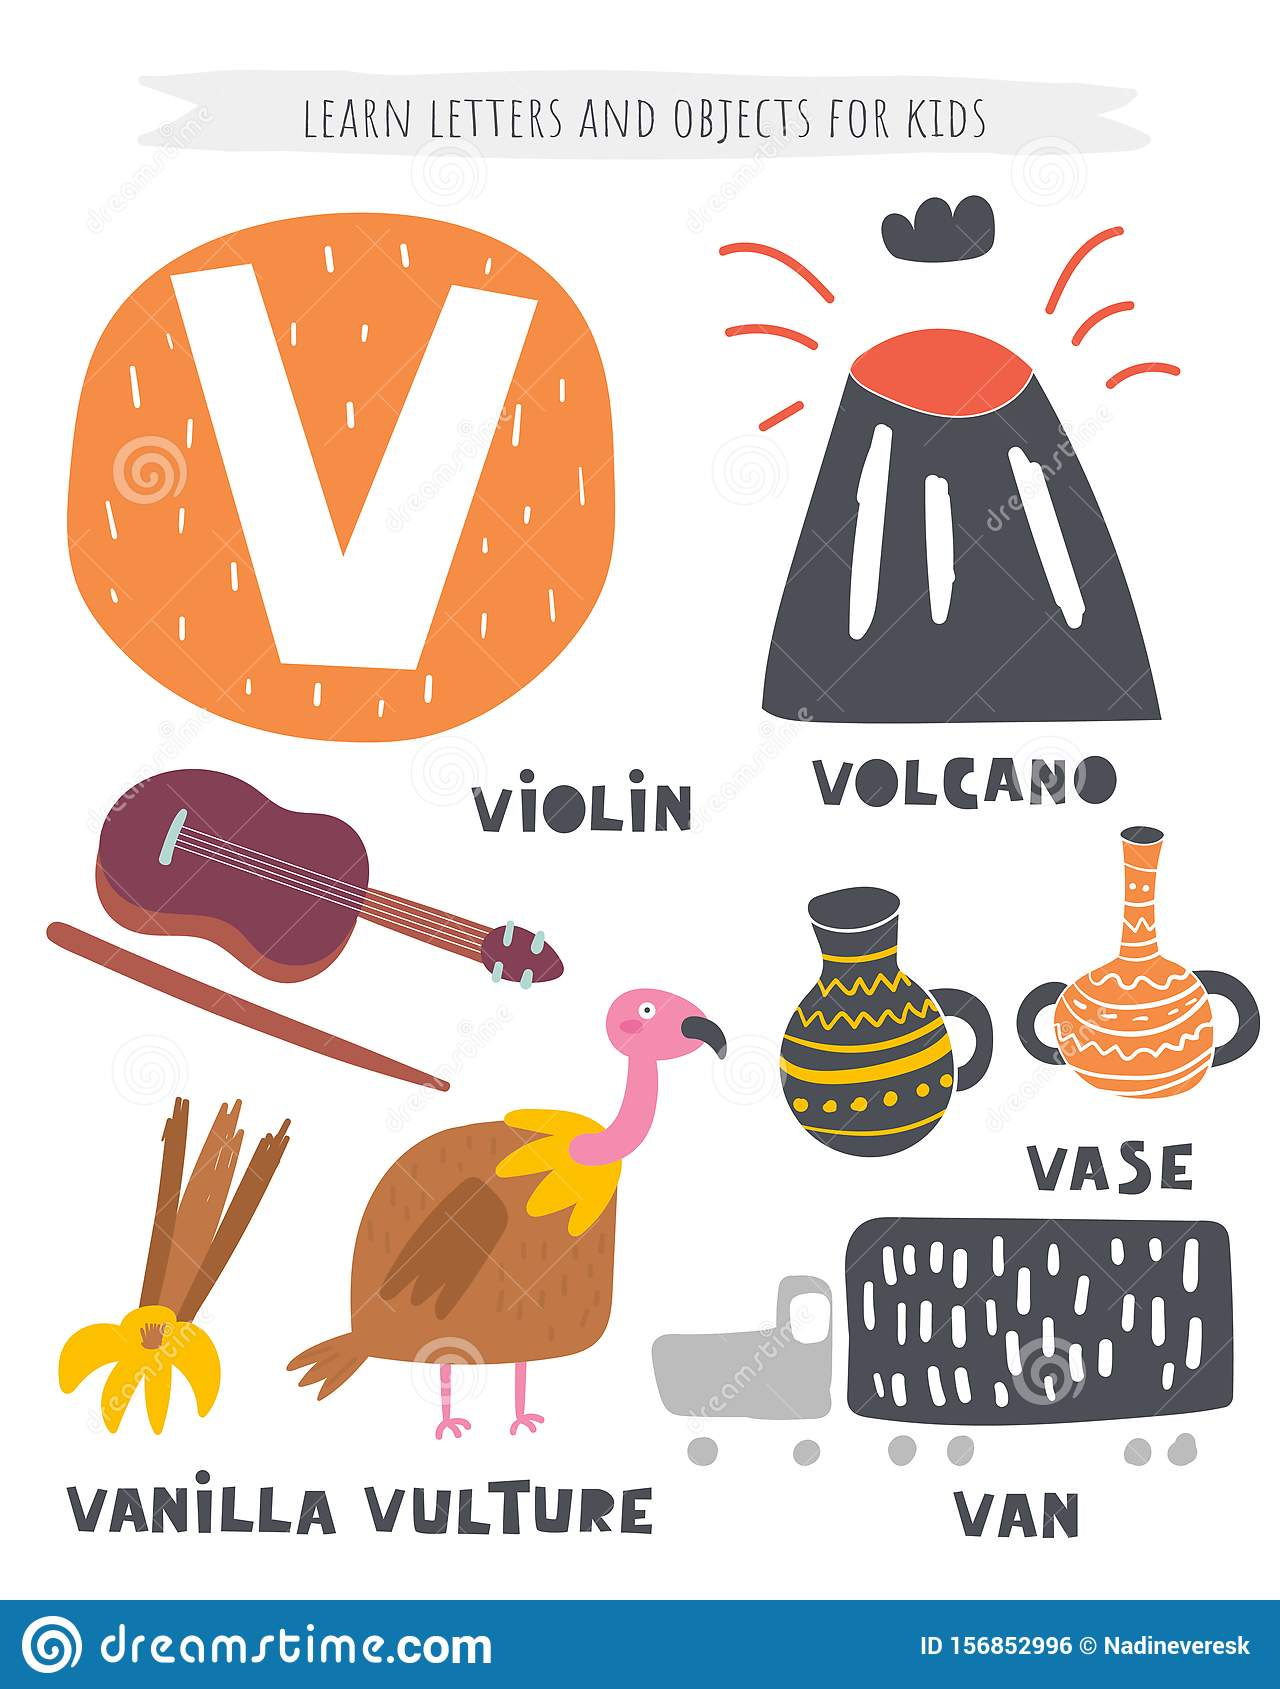 V Letter Objects And Animals Including Volcano, Vase, Van, Vanilla, Violin,  Vulture. Learn English Alphabet, Letters Stock Vector - Illustration of  lettering, background: 156852996